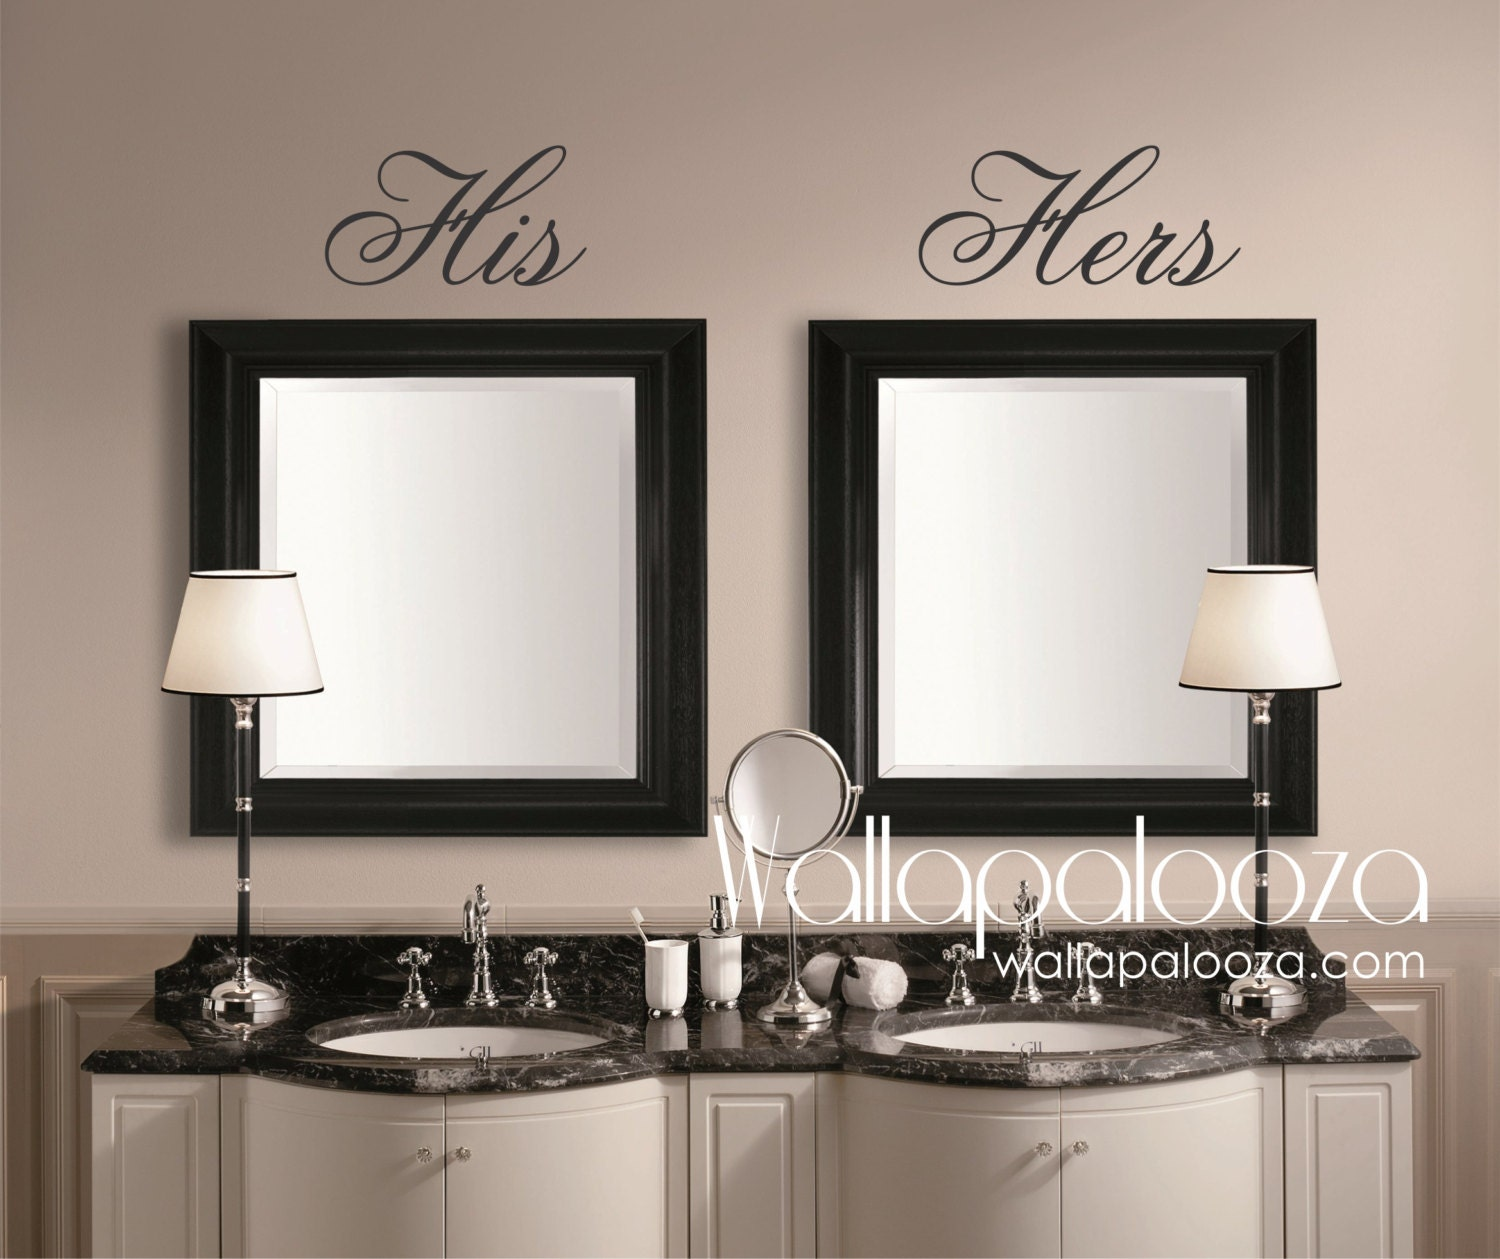 His And Hers Wall Decal Mirror Decal His By Wallapaloozadecals